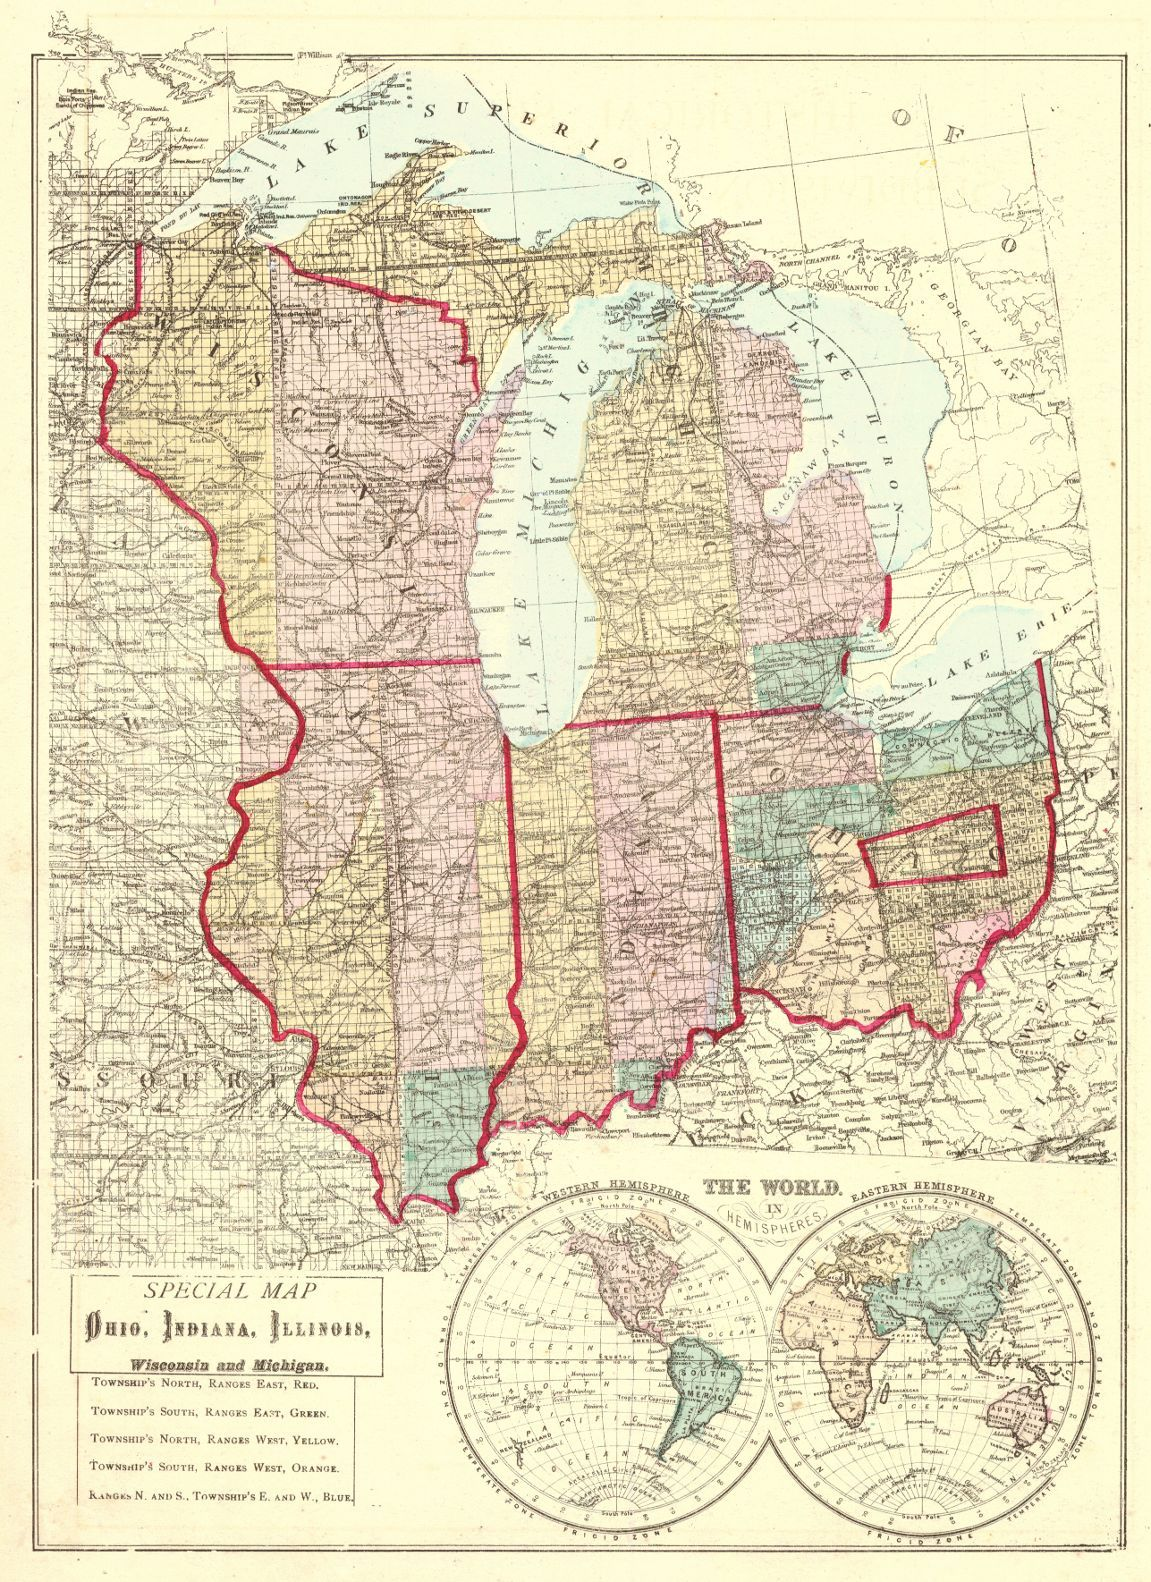 Michigan And Indiana Map.Map Antique Special Map Of Ohio Indiana Illinois Wisconsin And